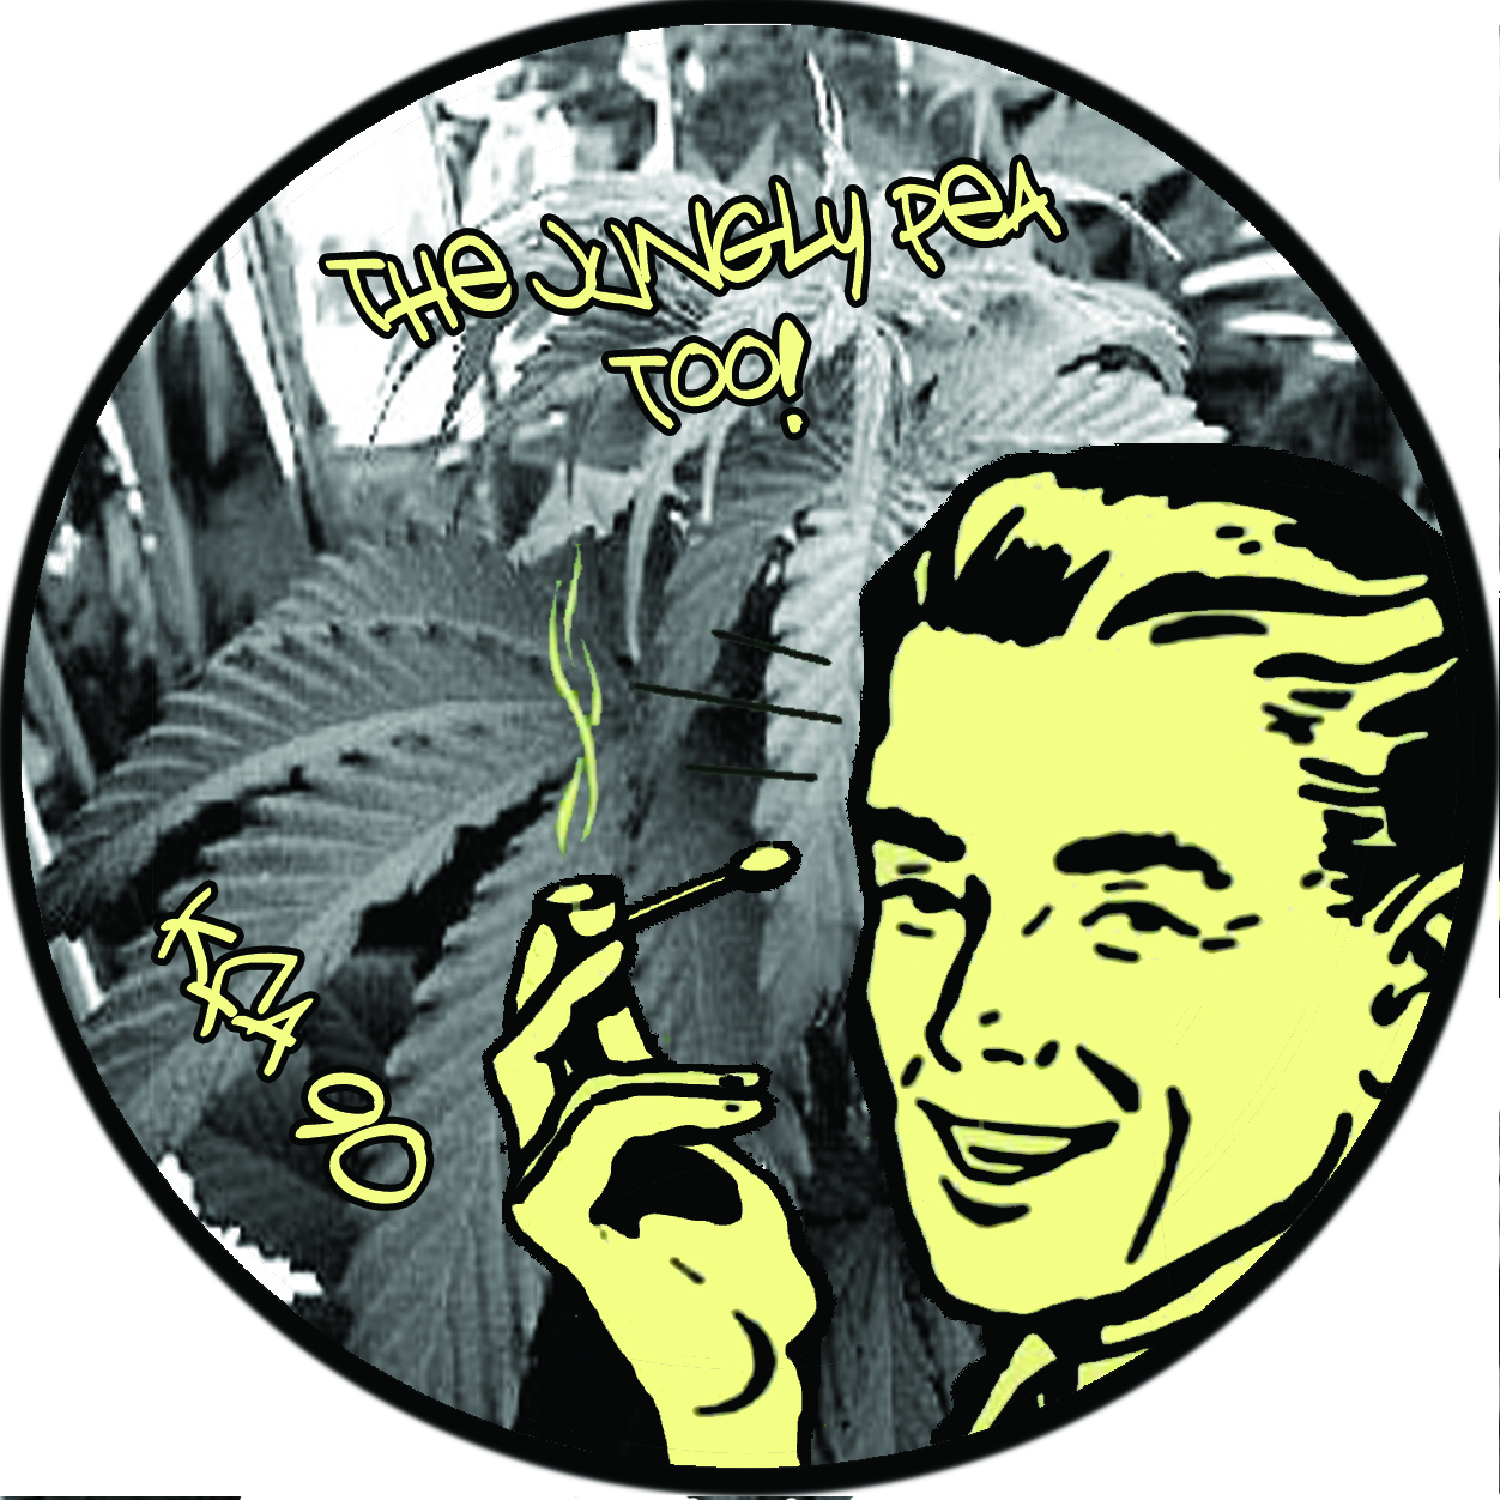 [KFA090] Various - The Jungly Pea Too (Seedy) (Digital Only)